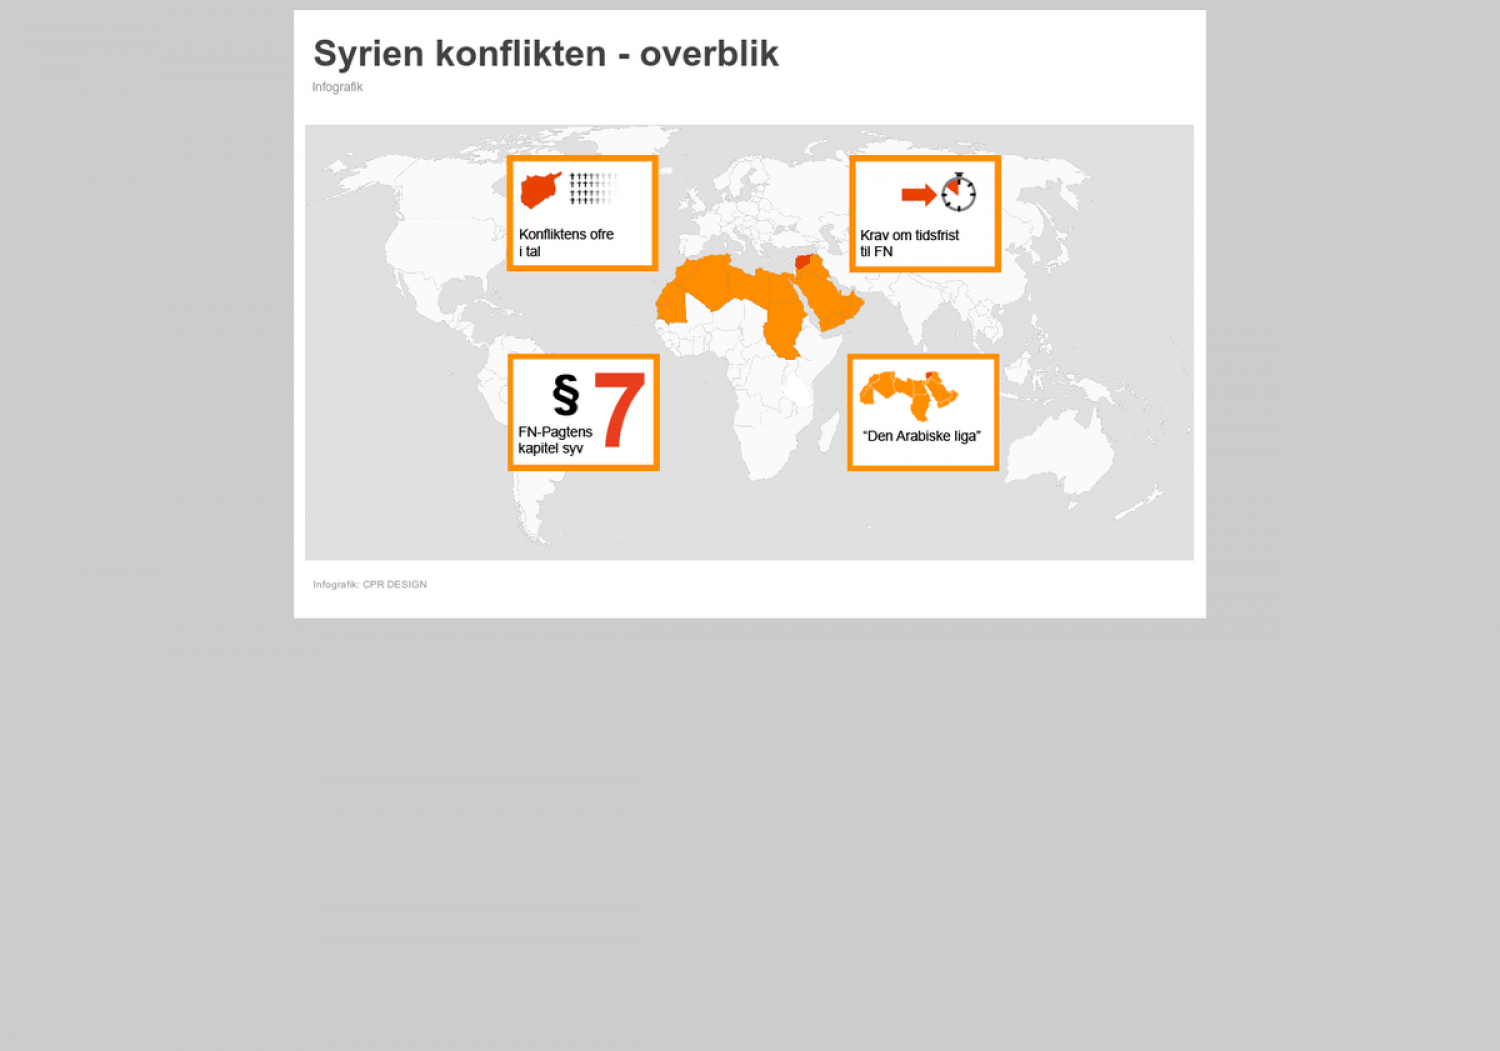 Syria Conflict Infographic